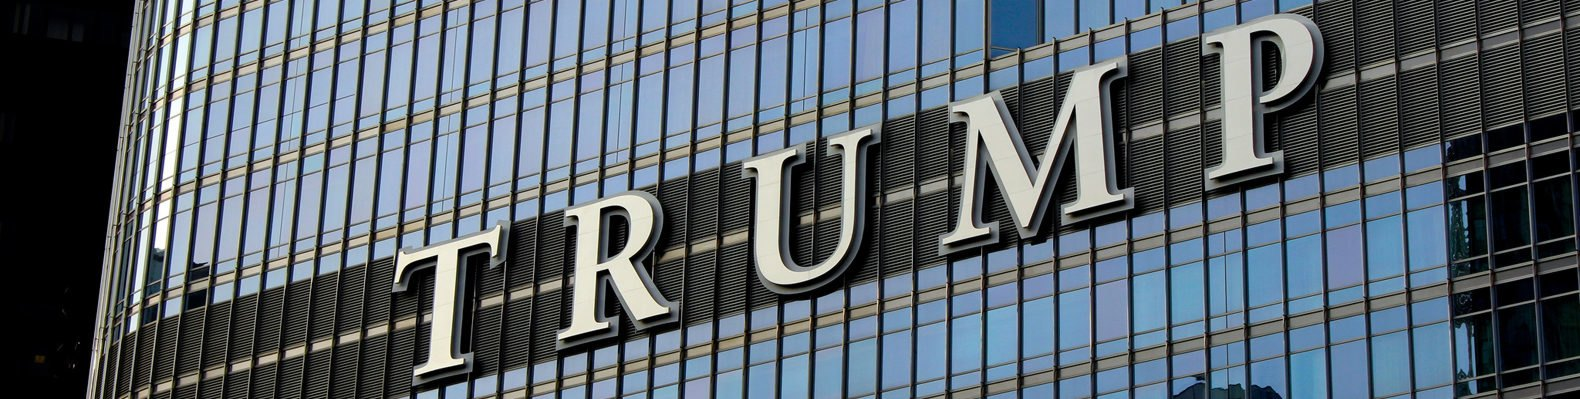 Trump spelled out on the front of the Chicago Trump Tower building